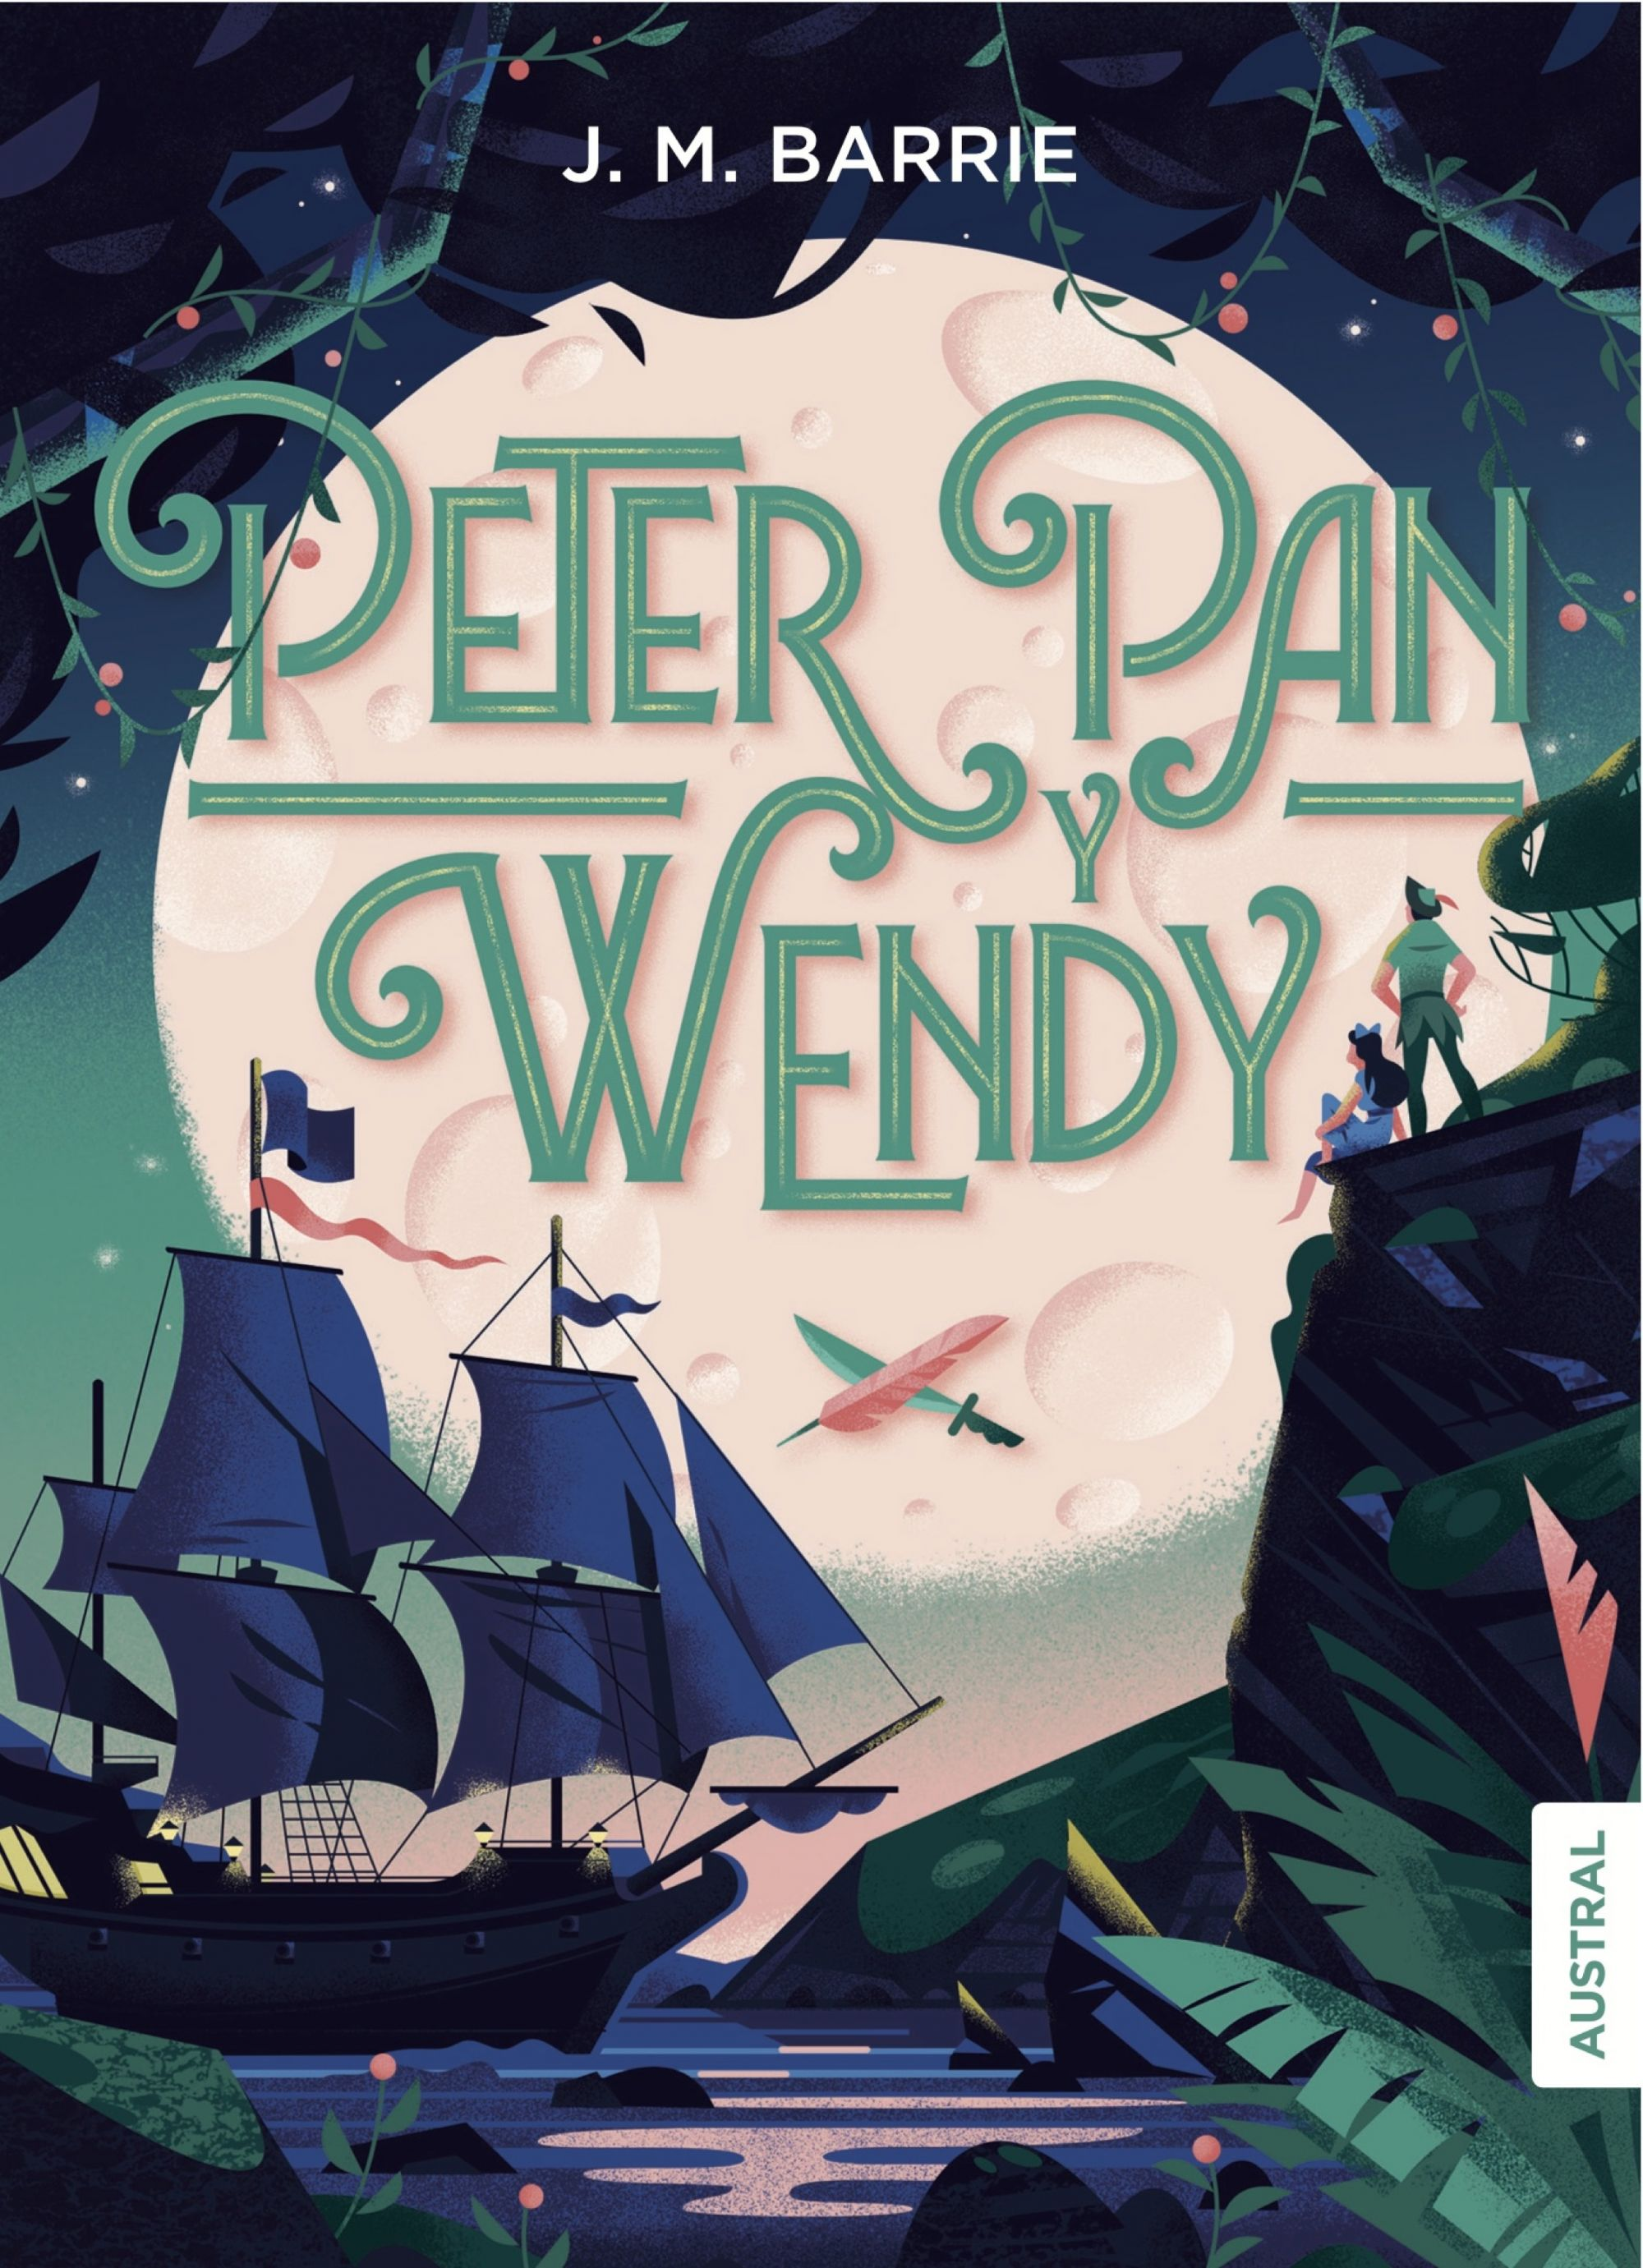 Peter Pan Libro Original Peter Pan Y Wendy Planeta De Libros